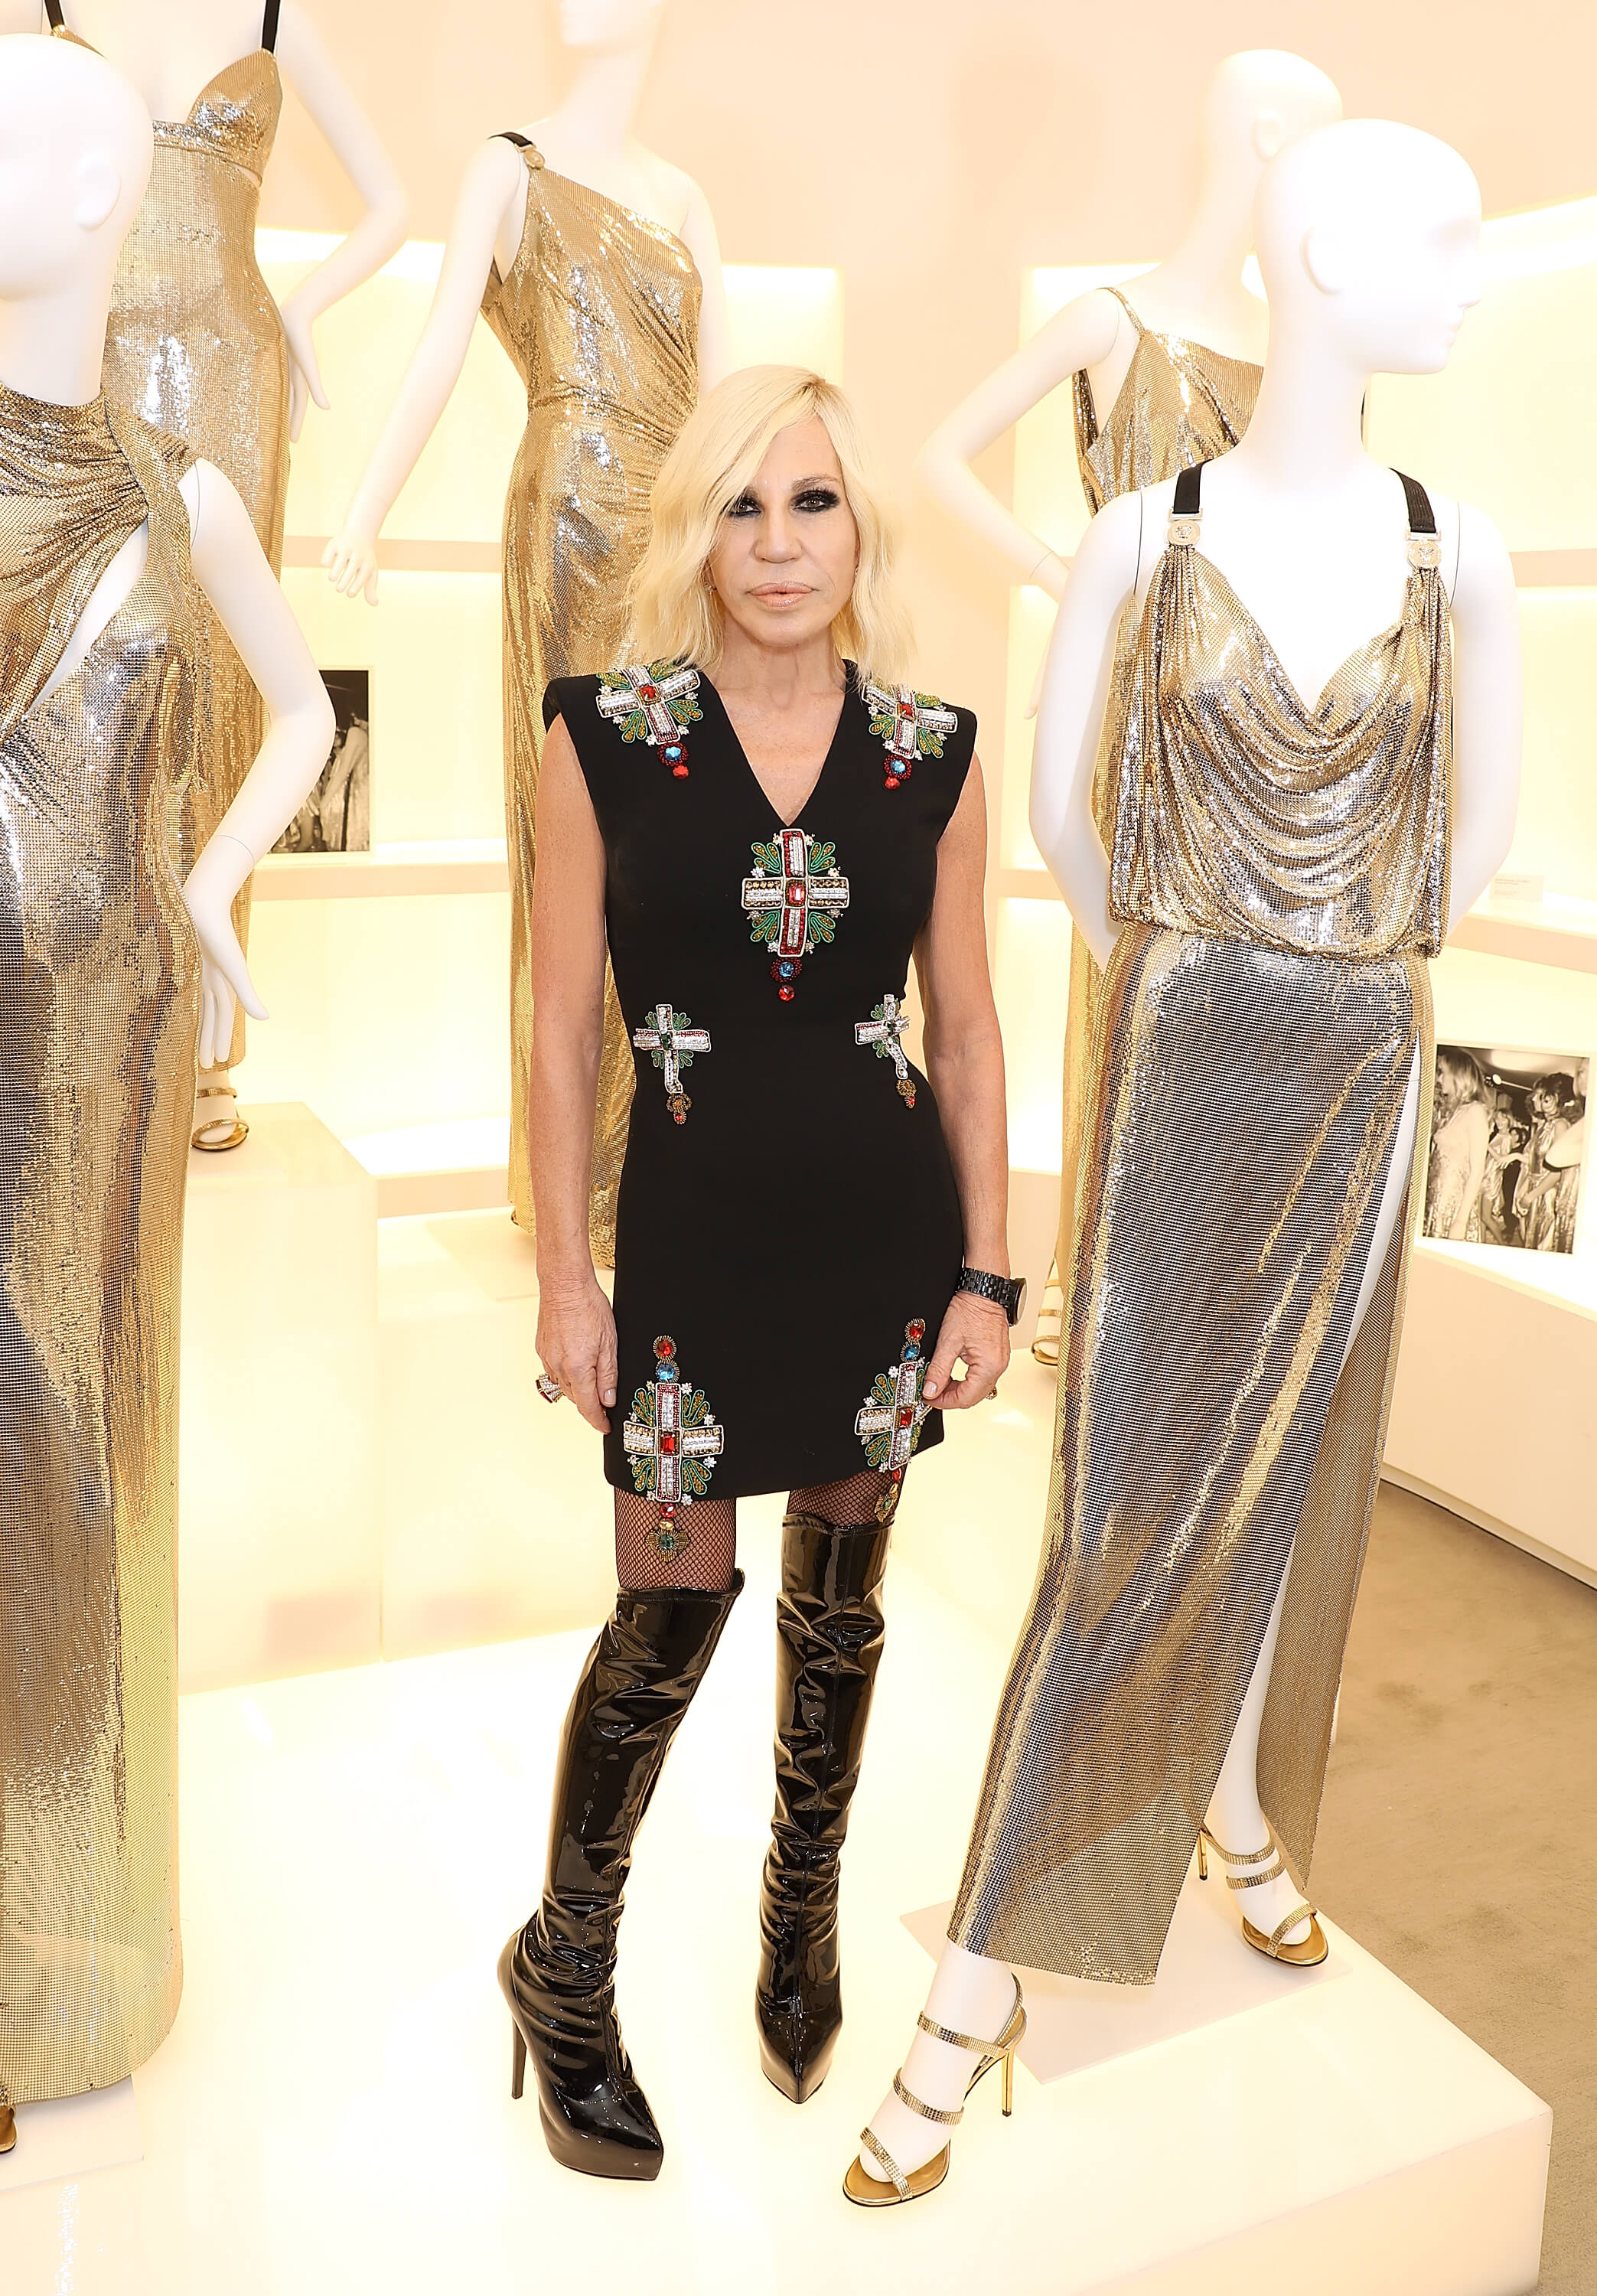 LONDON, ENGLAND - DECEMBER 05:  (EDITORS NOTE: This image has been retouched at the request of the client) Donatella Versace attends the Versace Boutique Opening on Sloane Street on December 5, 2017 in London, England.  (Photo by Darren Gerrish/Darren Gerrish/WireImage) *** Local Caption *** Donatella Versace